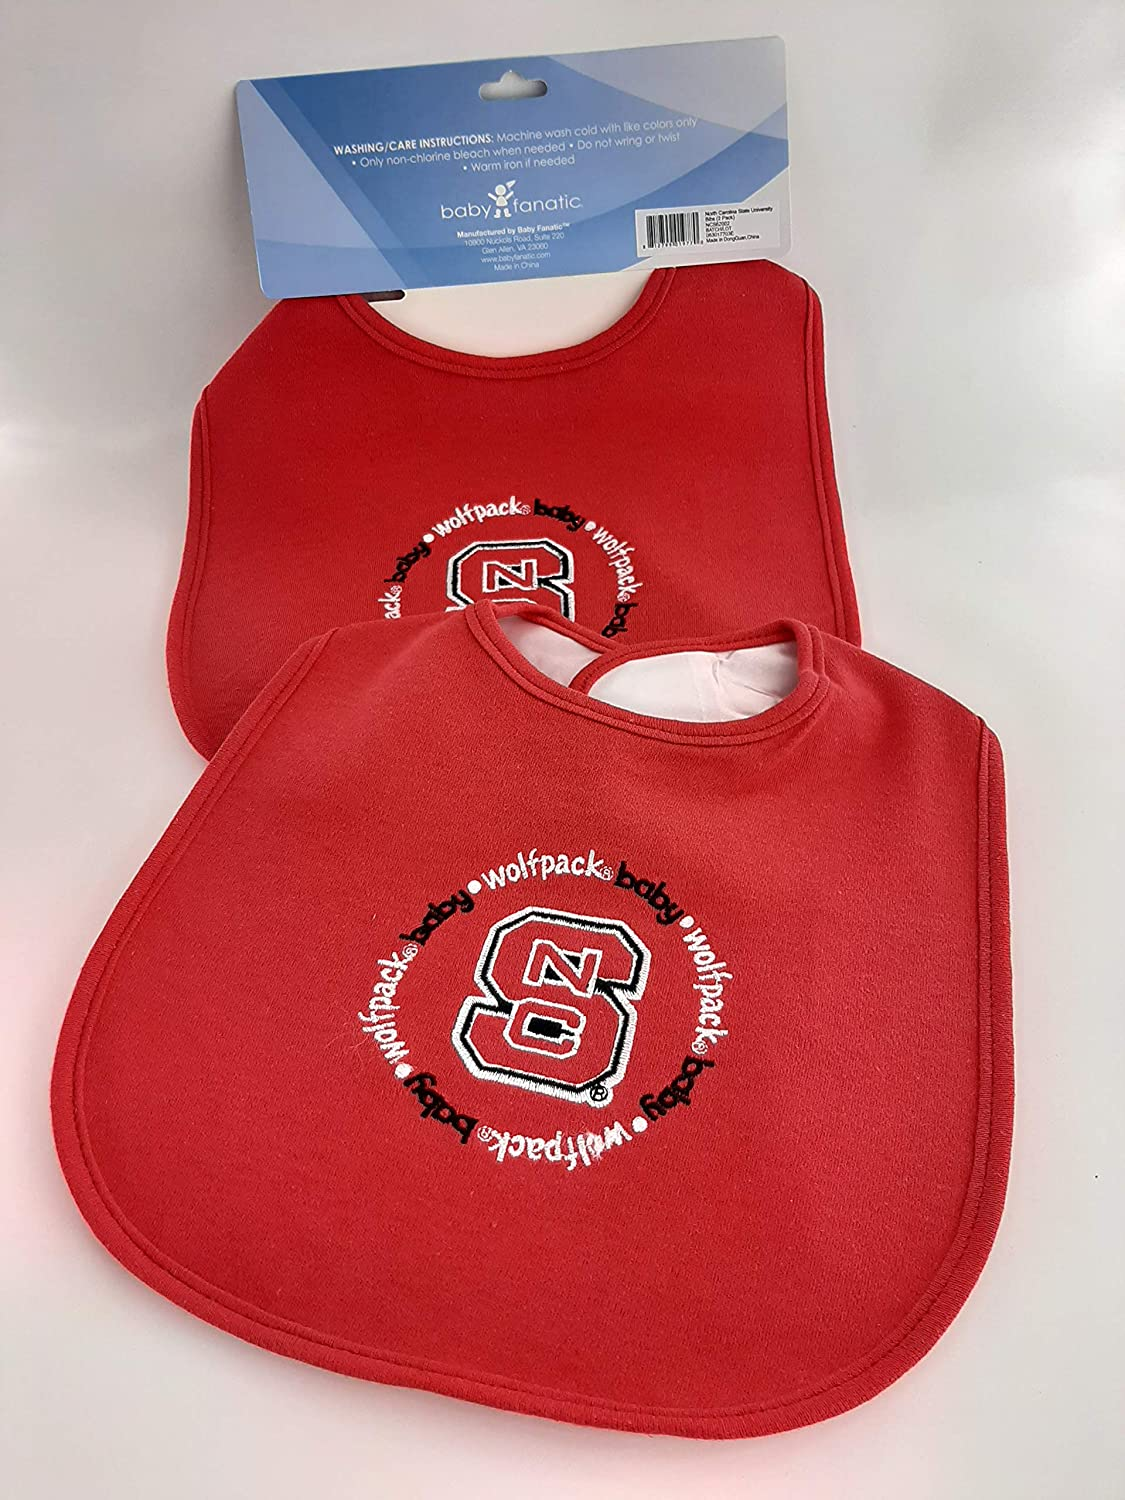 Louisiana State University Baby Fanatic Team Color Bibs 2-Count